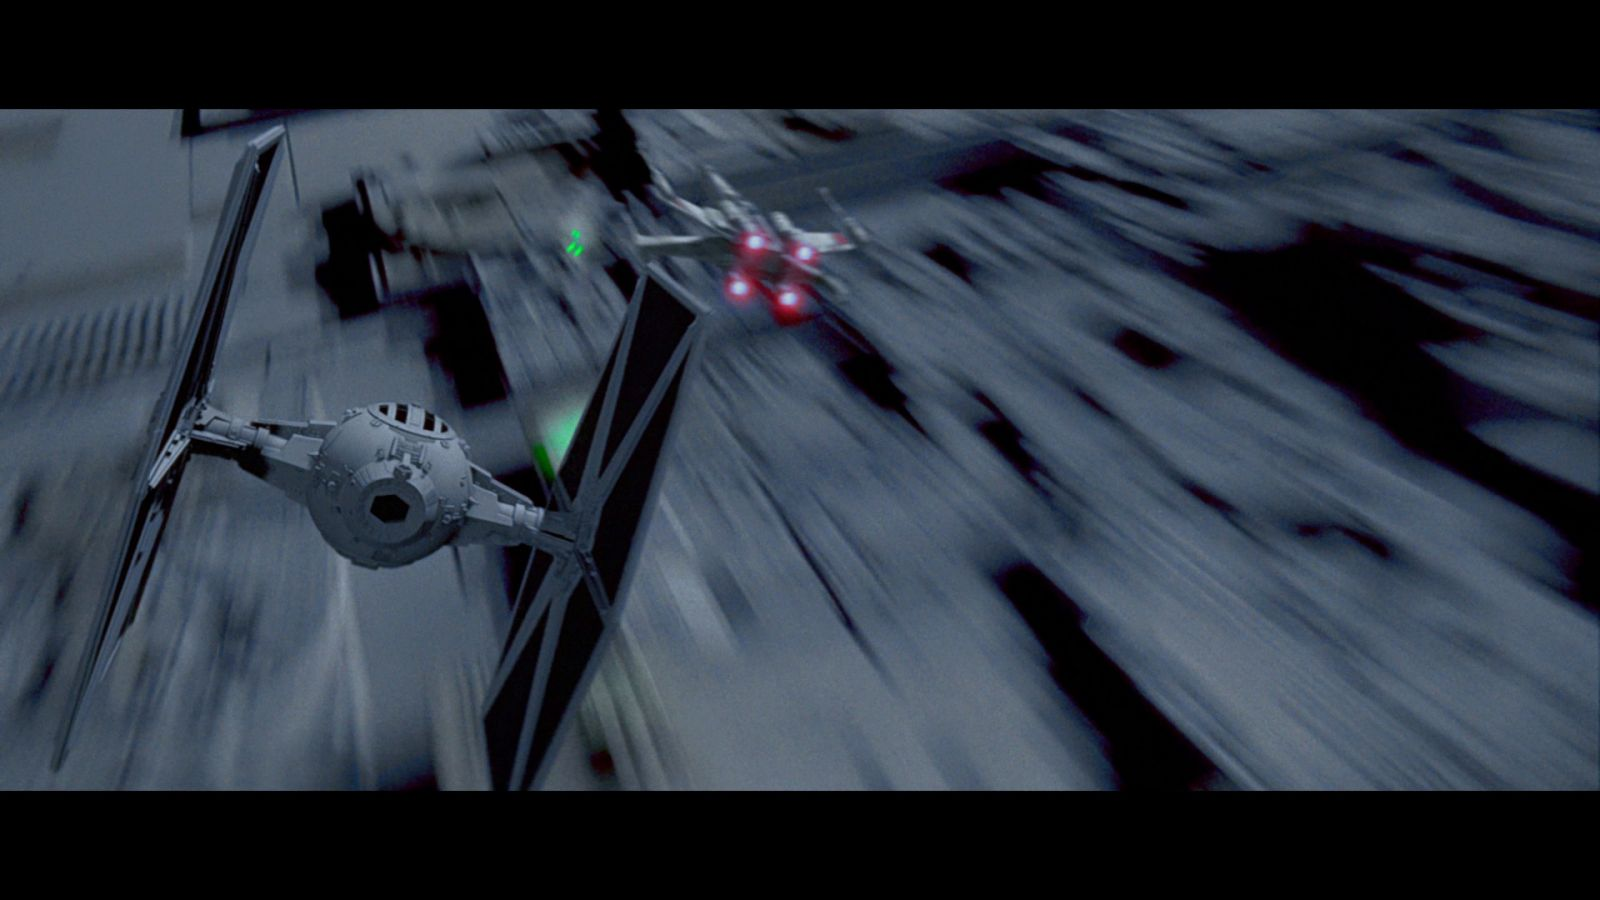 Star Wars A New Hope Bluray Capture 03 14